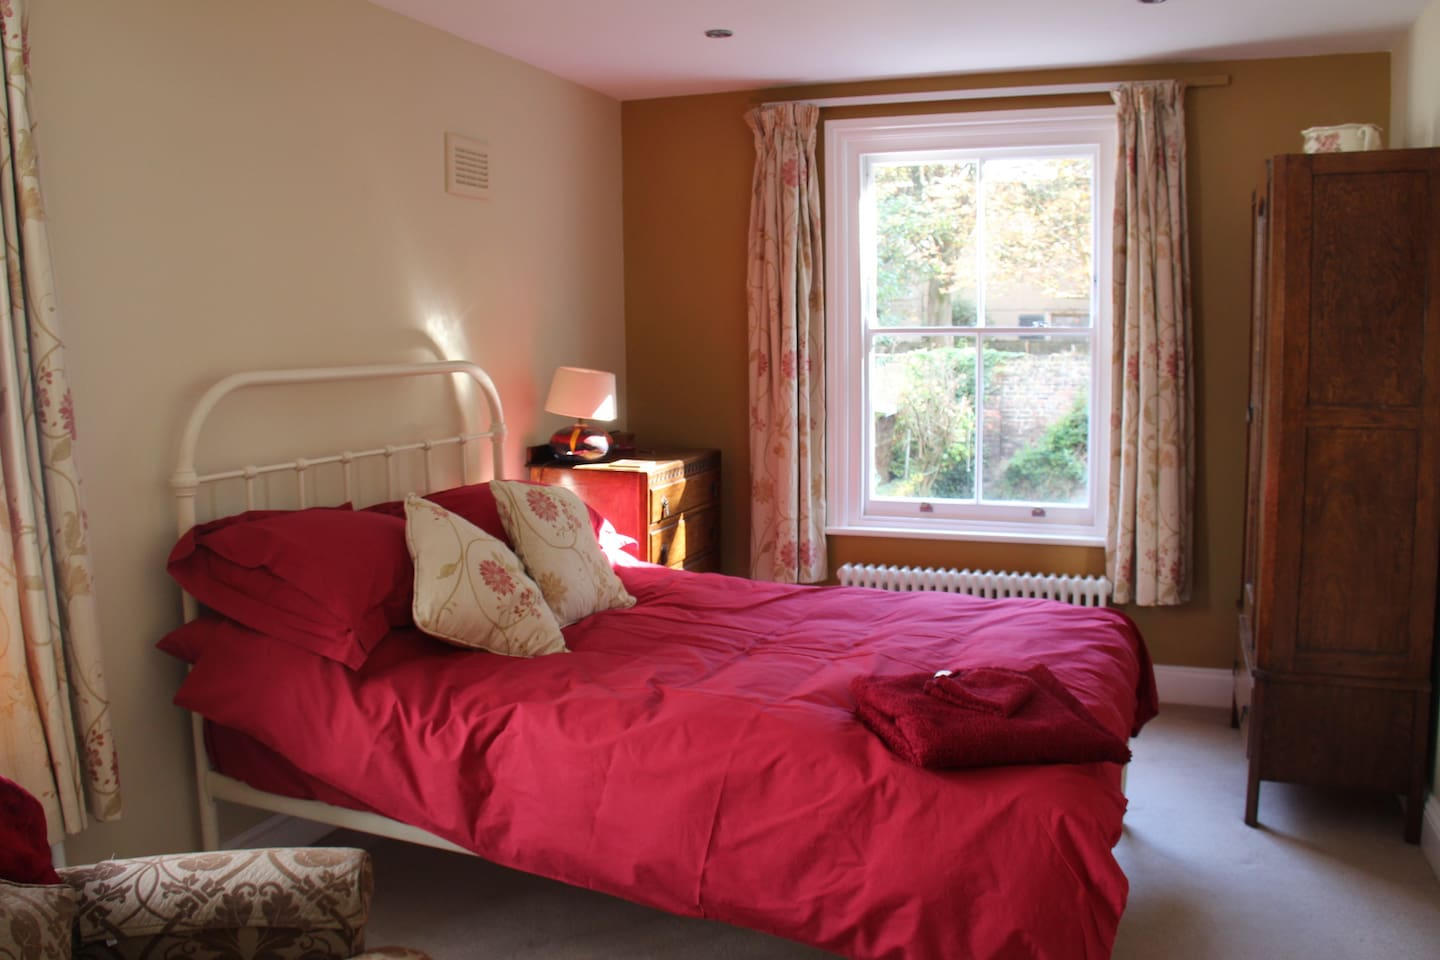 Real double bed with duvet and cotton sheets